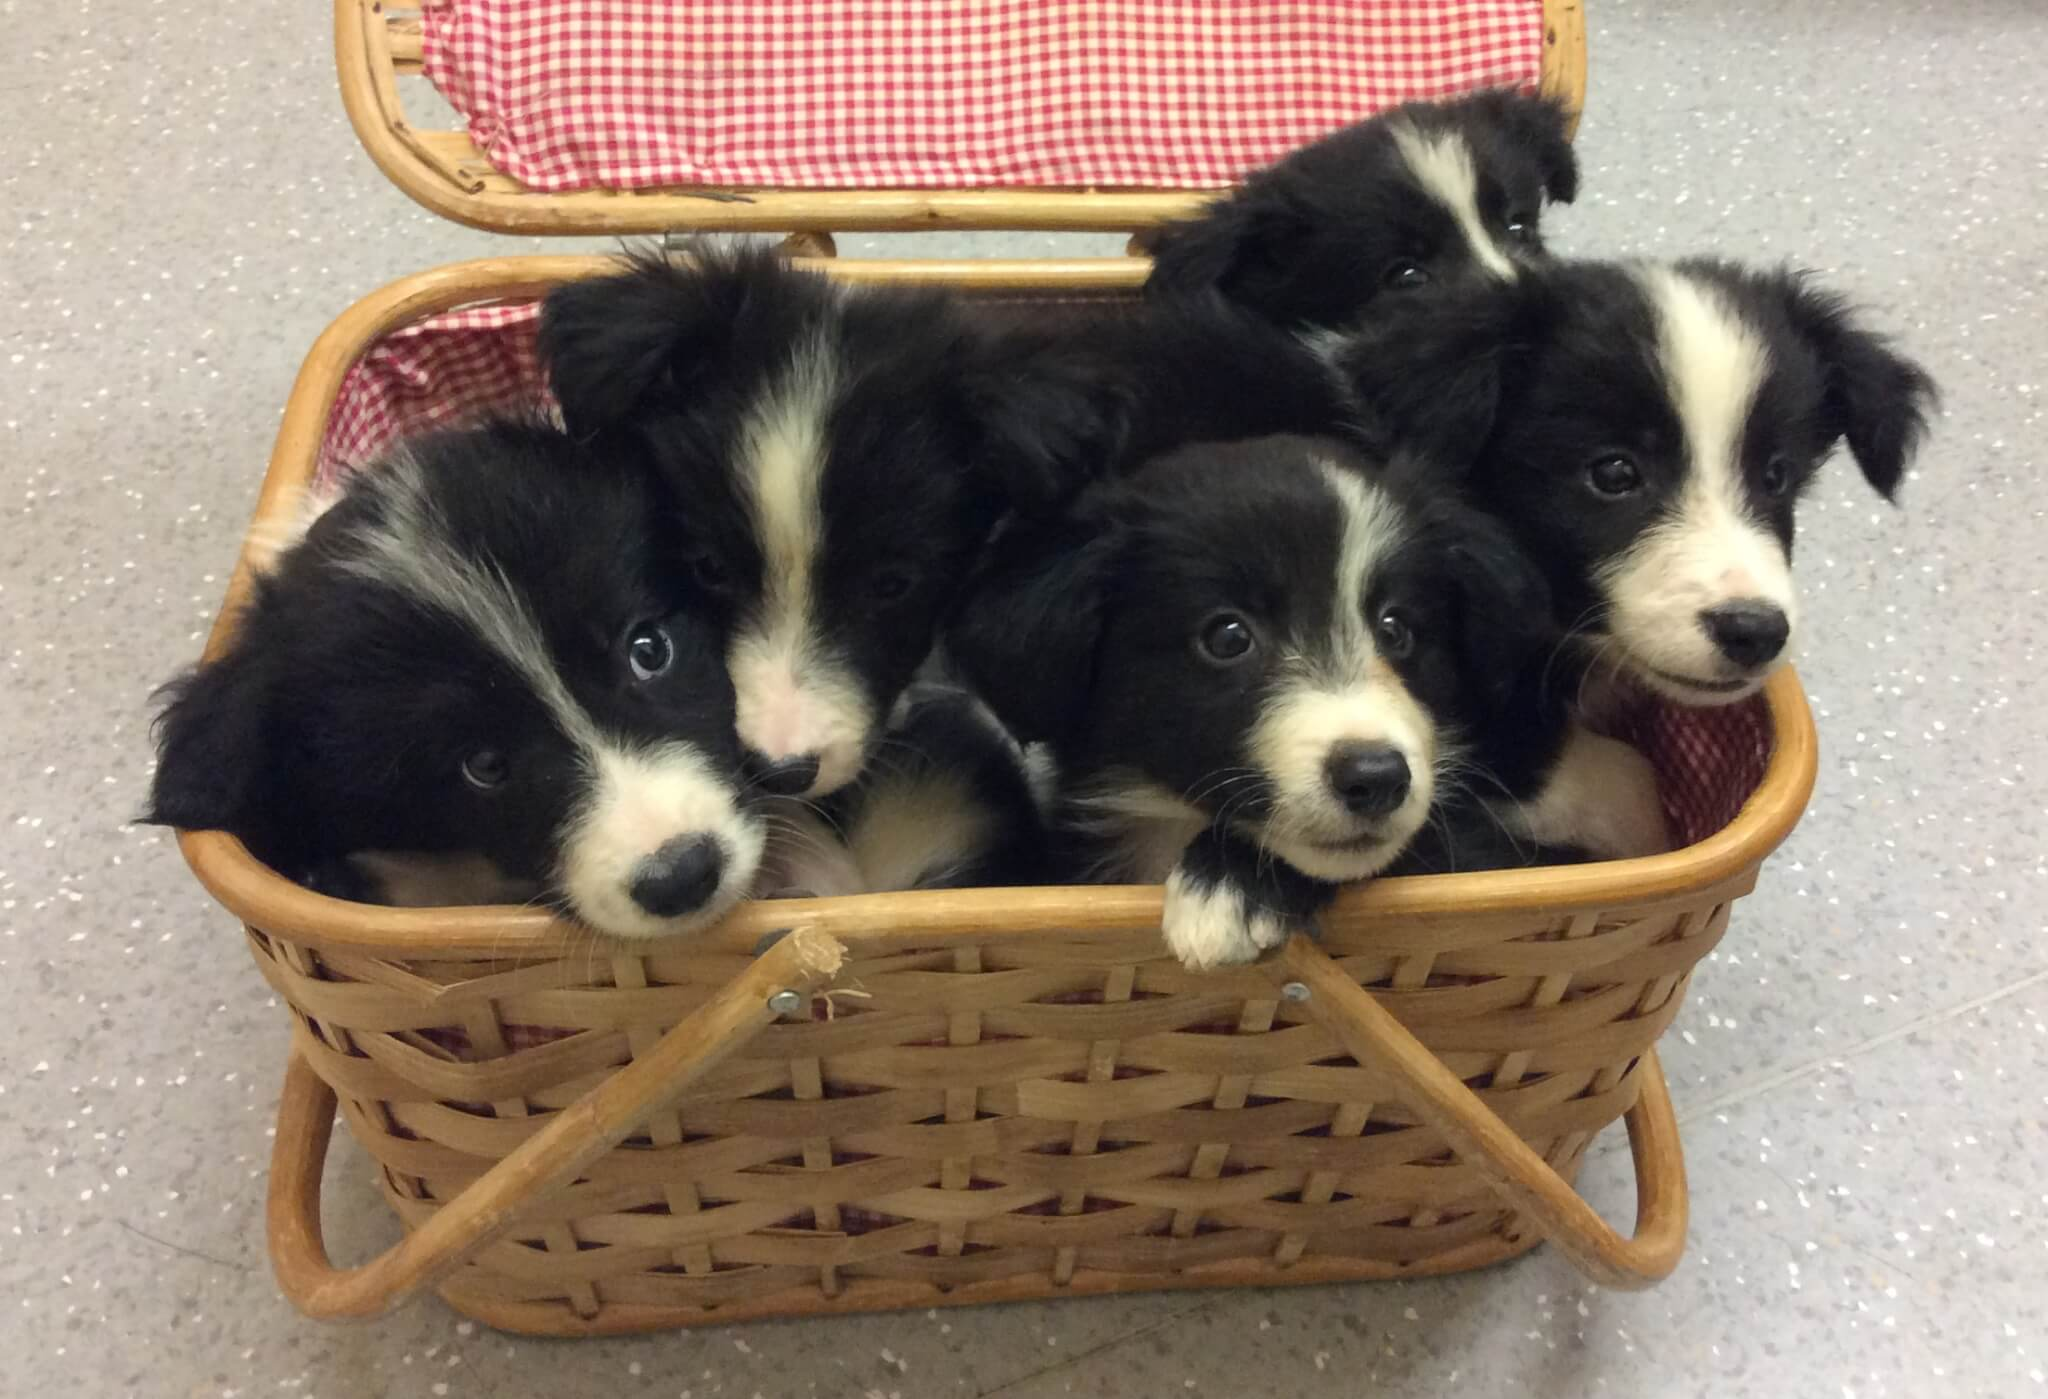 Image of: Southeastern Guide Puppy Preschool Is Class Where Your Puppy Can Begin To Learn To Socialise And Interact With Humans And Other Dogs It Is Vital Part In Young Dogs Youtube Central Coast Puppy Preschool Dog Training At Doyalson